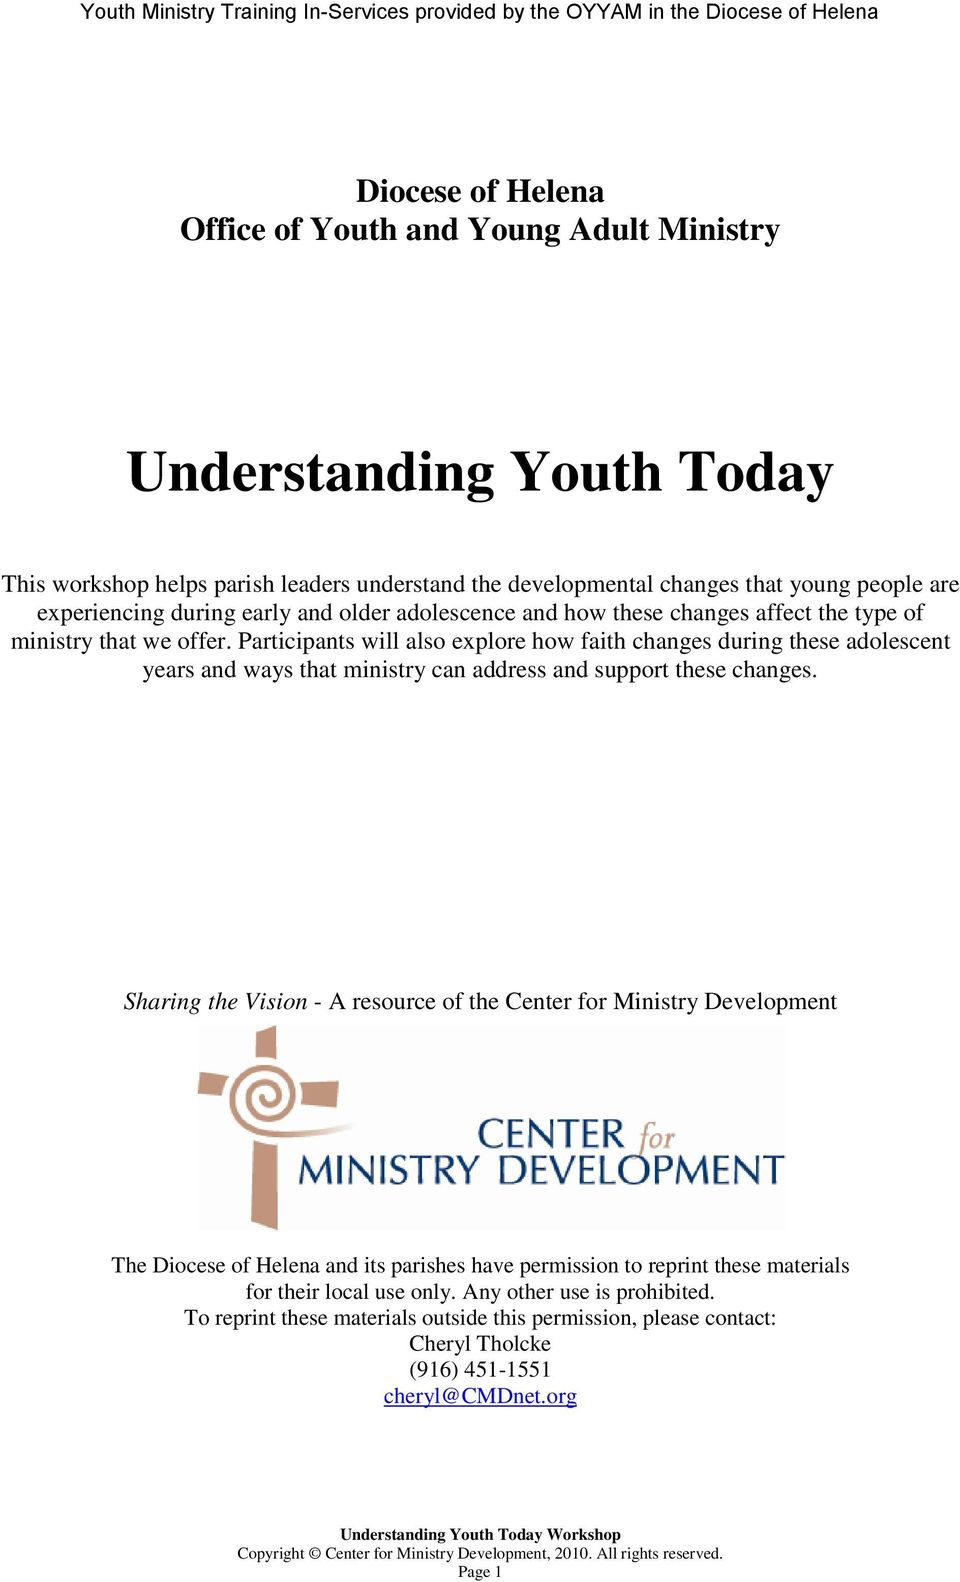 Participants will also explore how faith changes during these adolescent years and ways that ministry can address and support these changes.